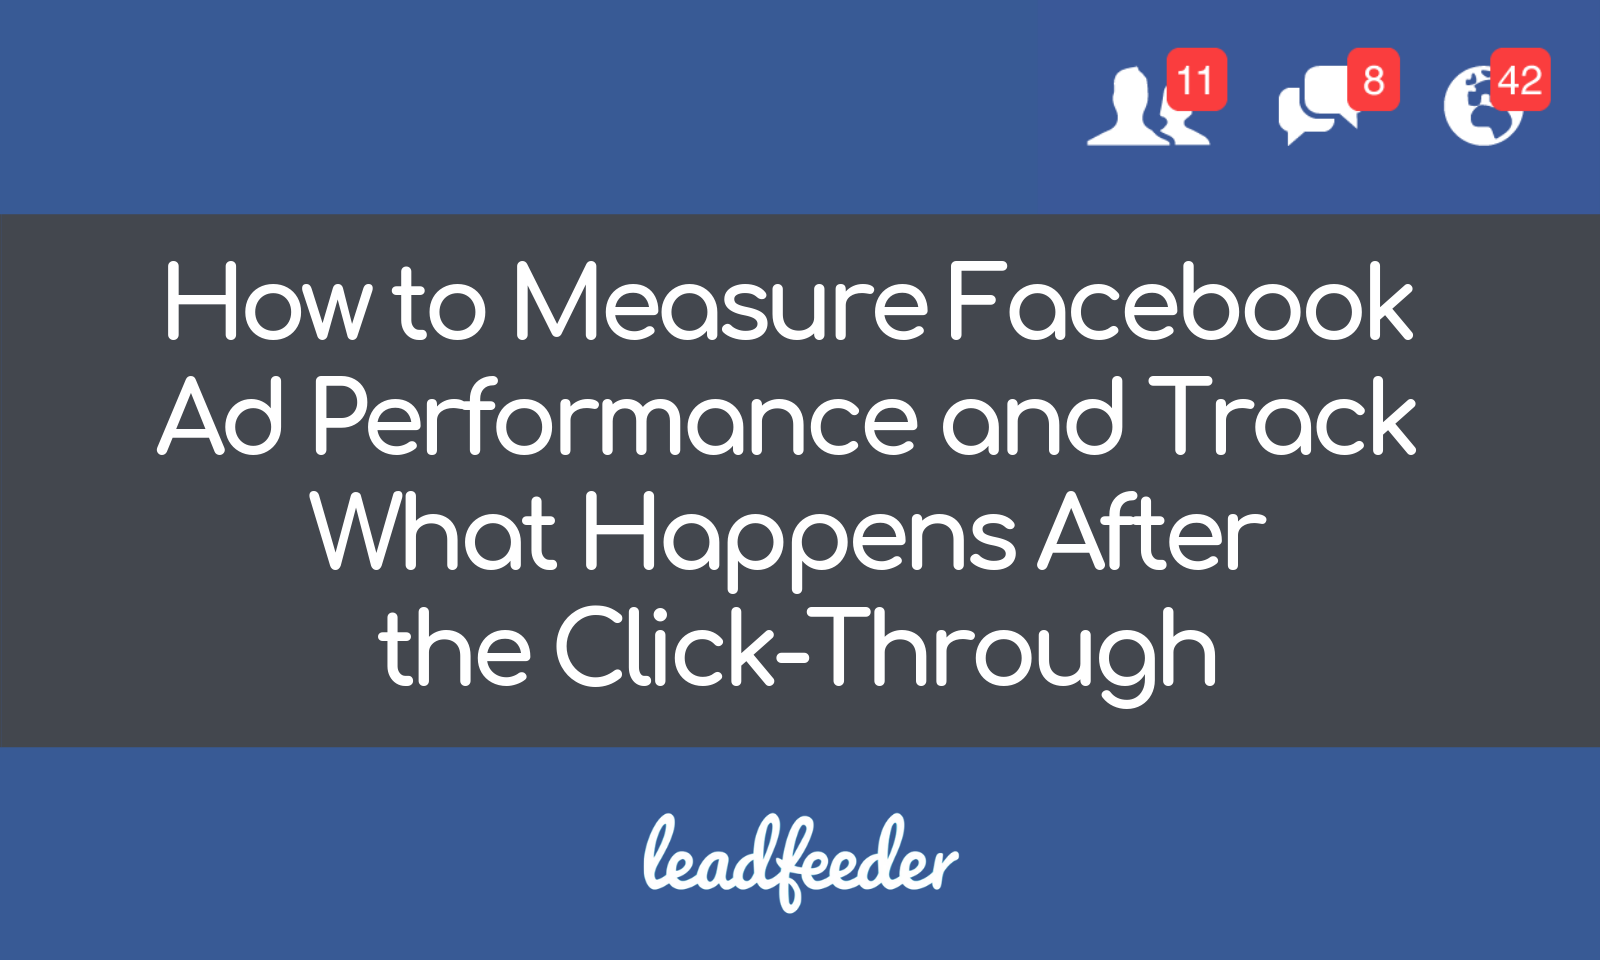 How to Measure Facebook Ad Performance and Track What Happens After the Click-Through